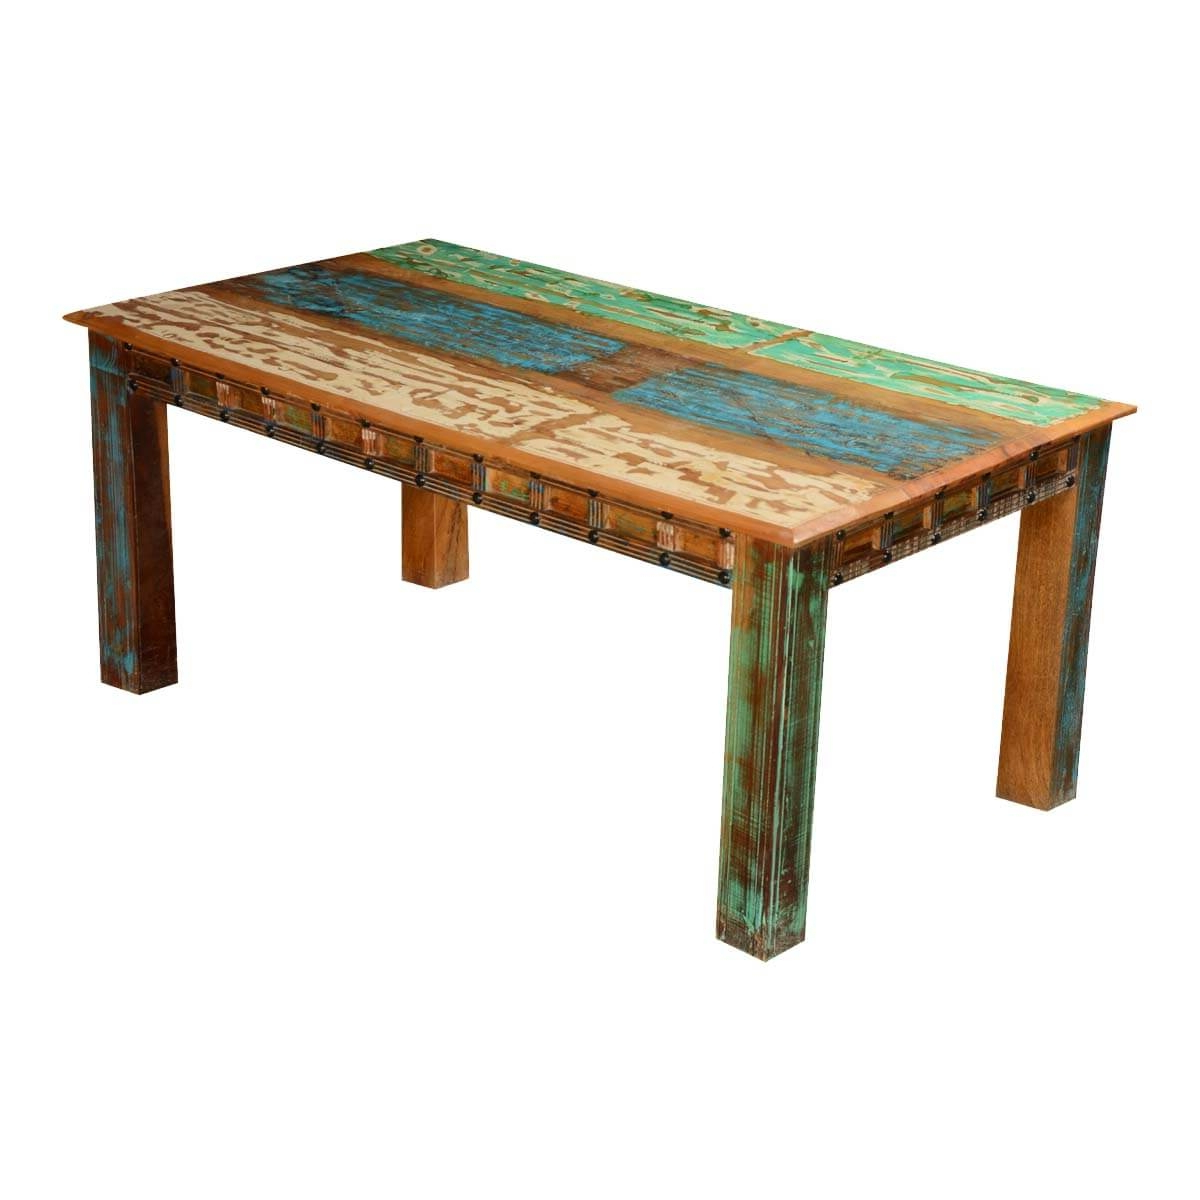 Preferred Small Round Dining Tables With Reclaimed Wood With Gothic Rustic Rainbow Reclaimed Wood Dining Table Hover Zoom (View 19 of 25)